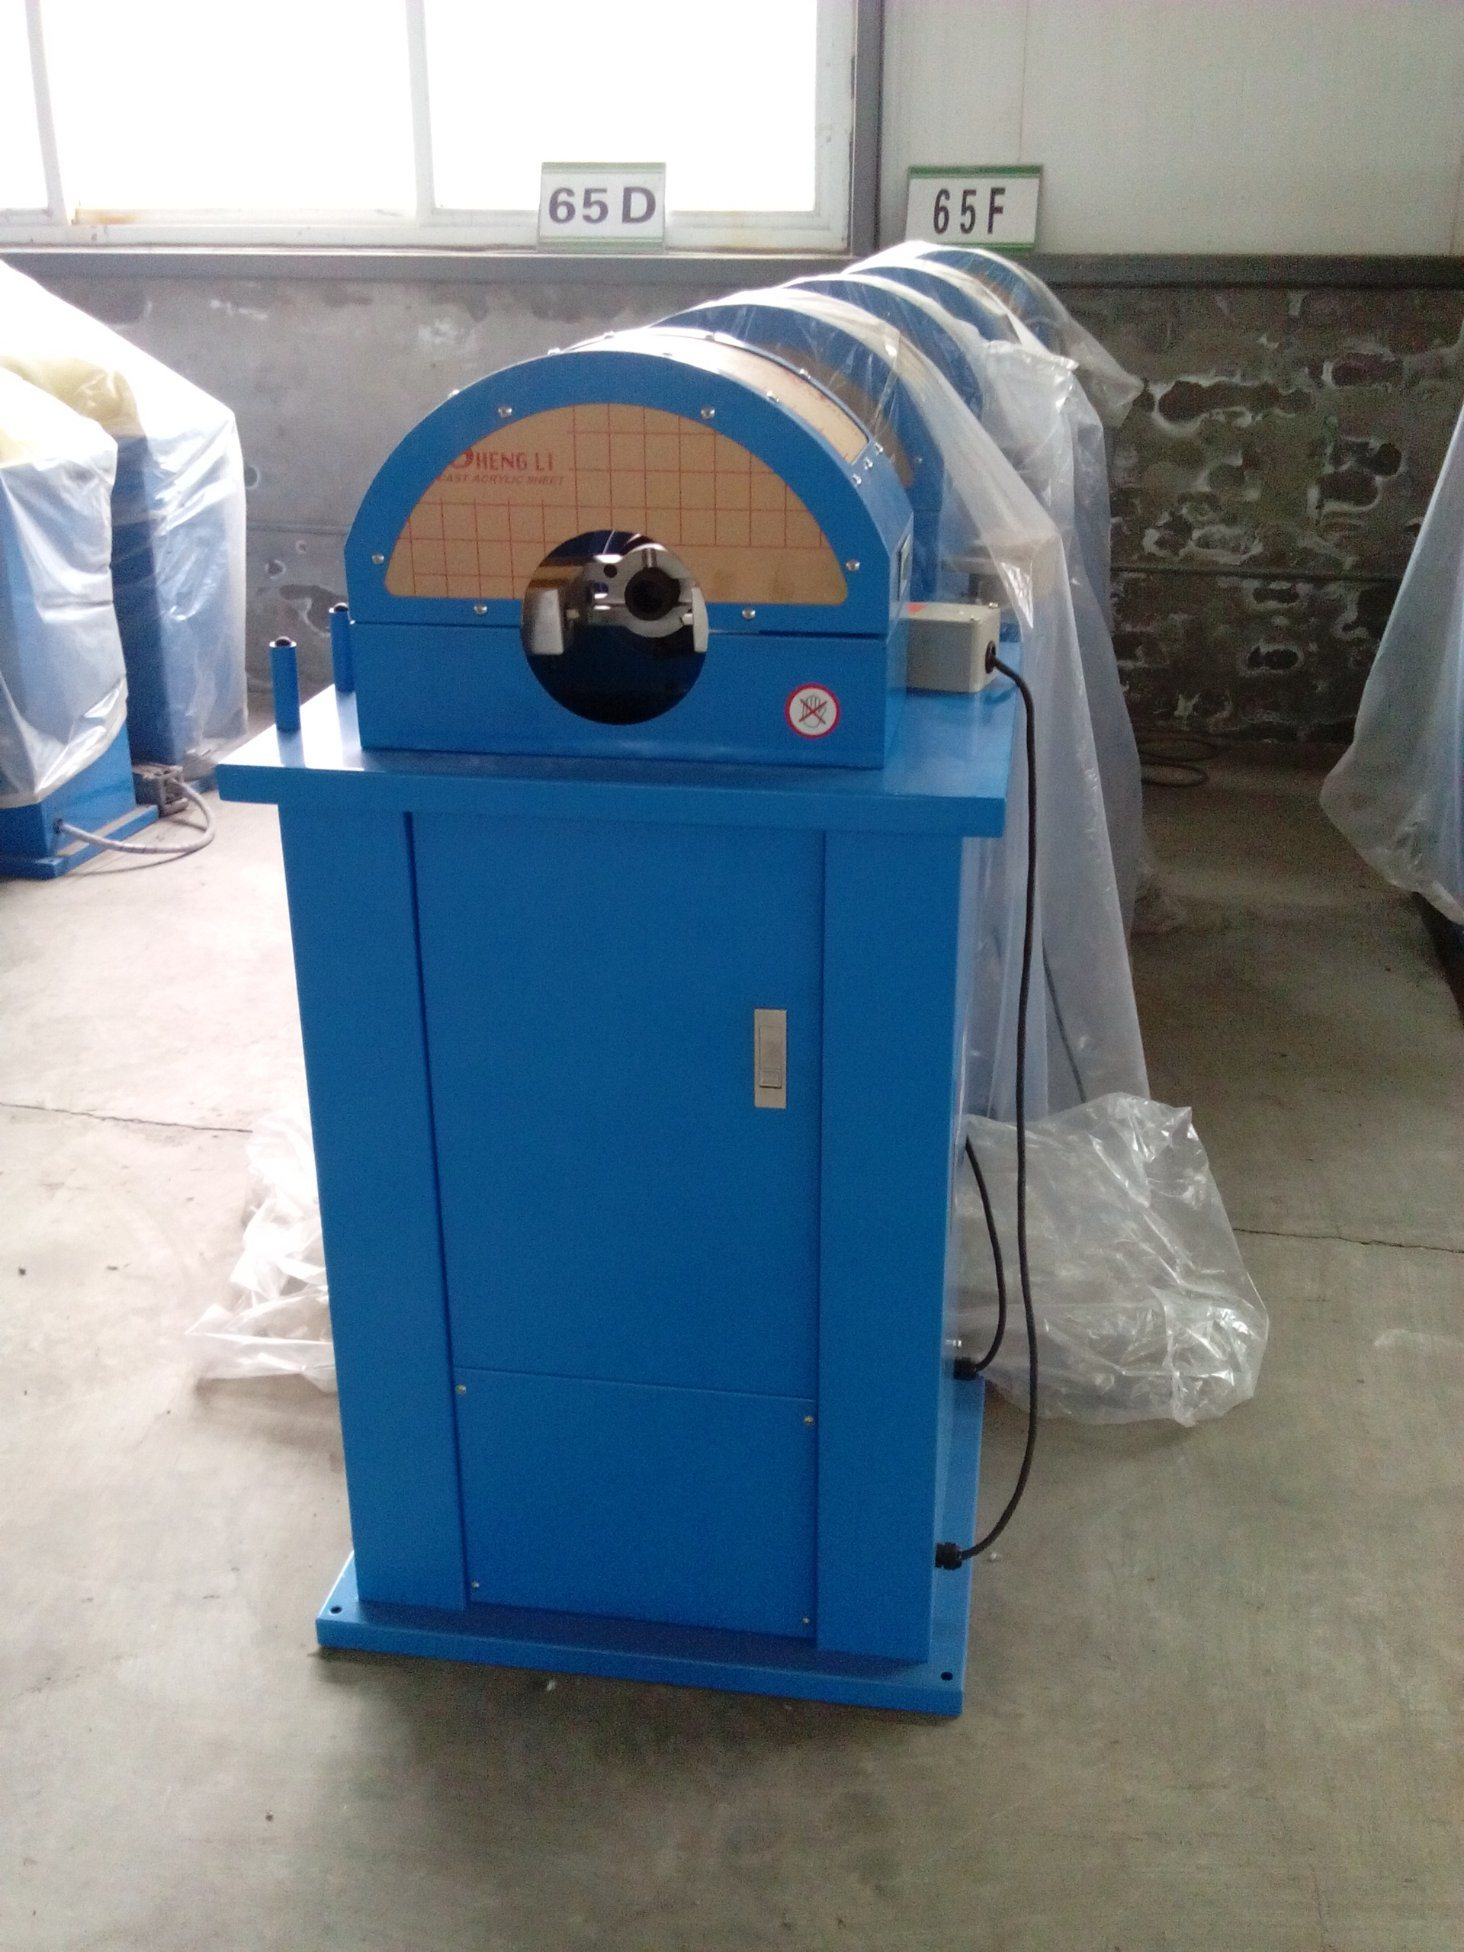 Hydraulic External & Internal Hose Stripping Machine Km-65f